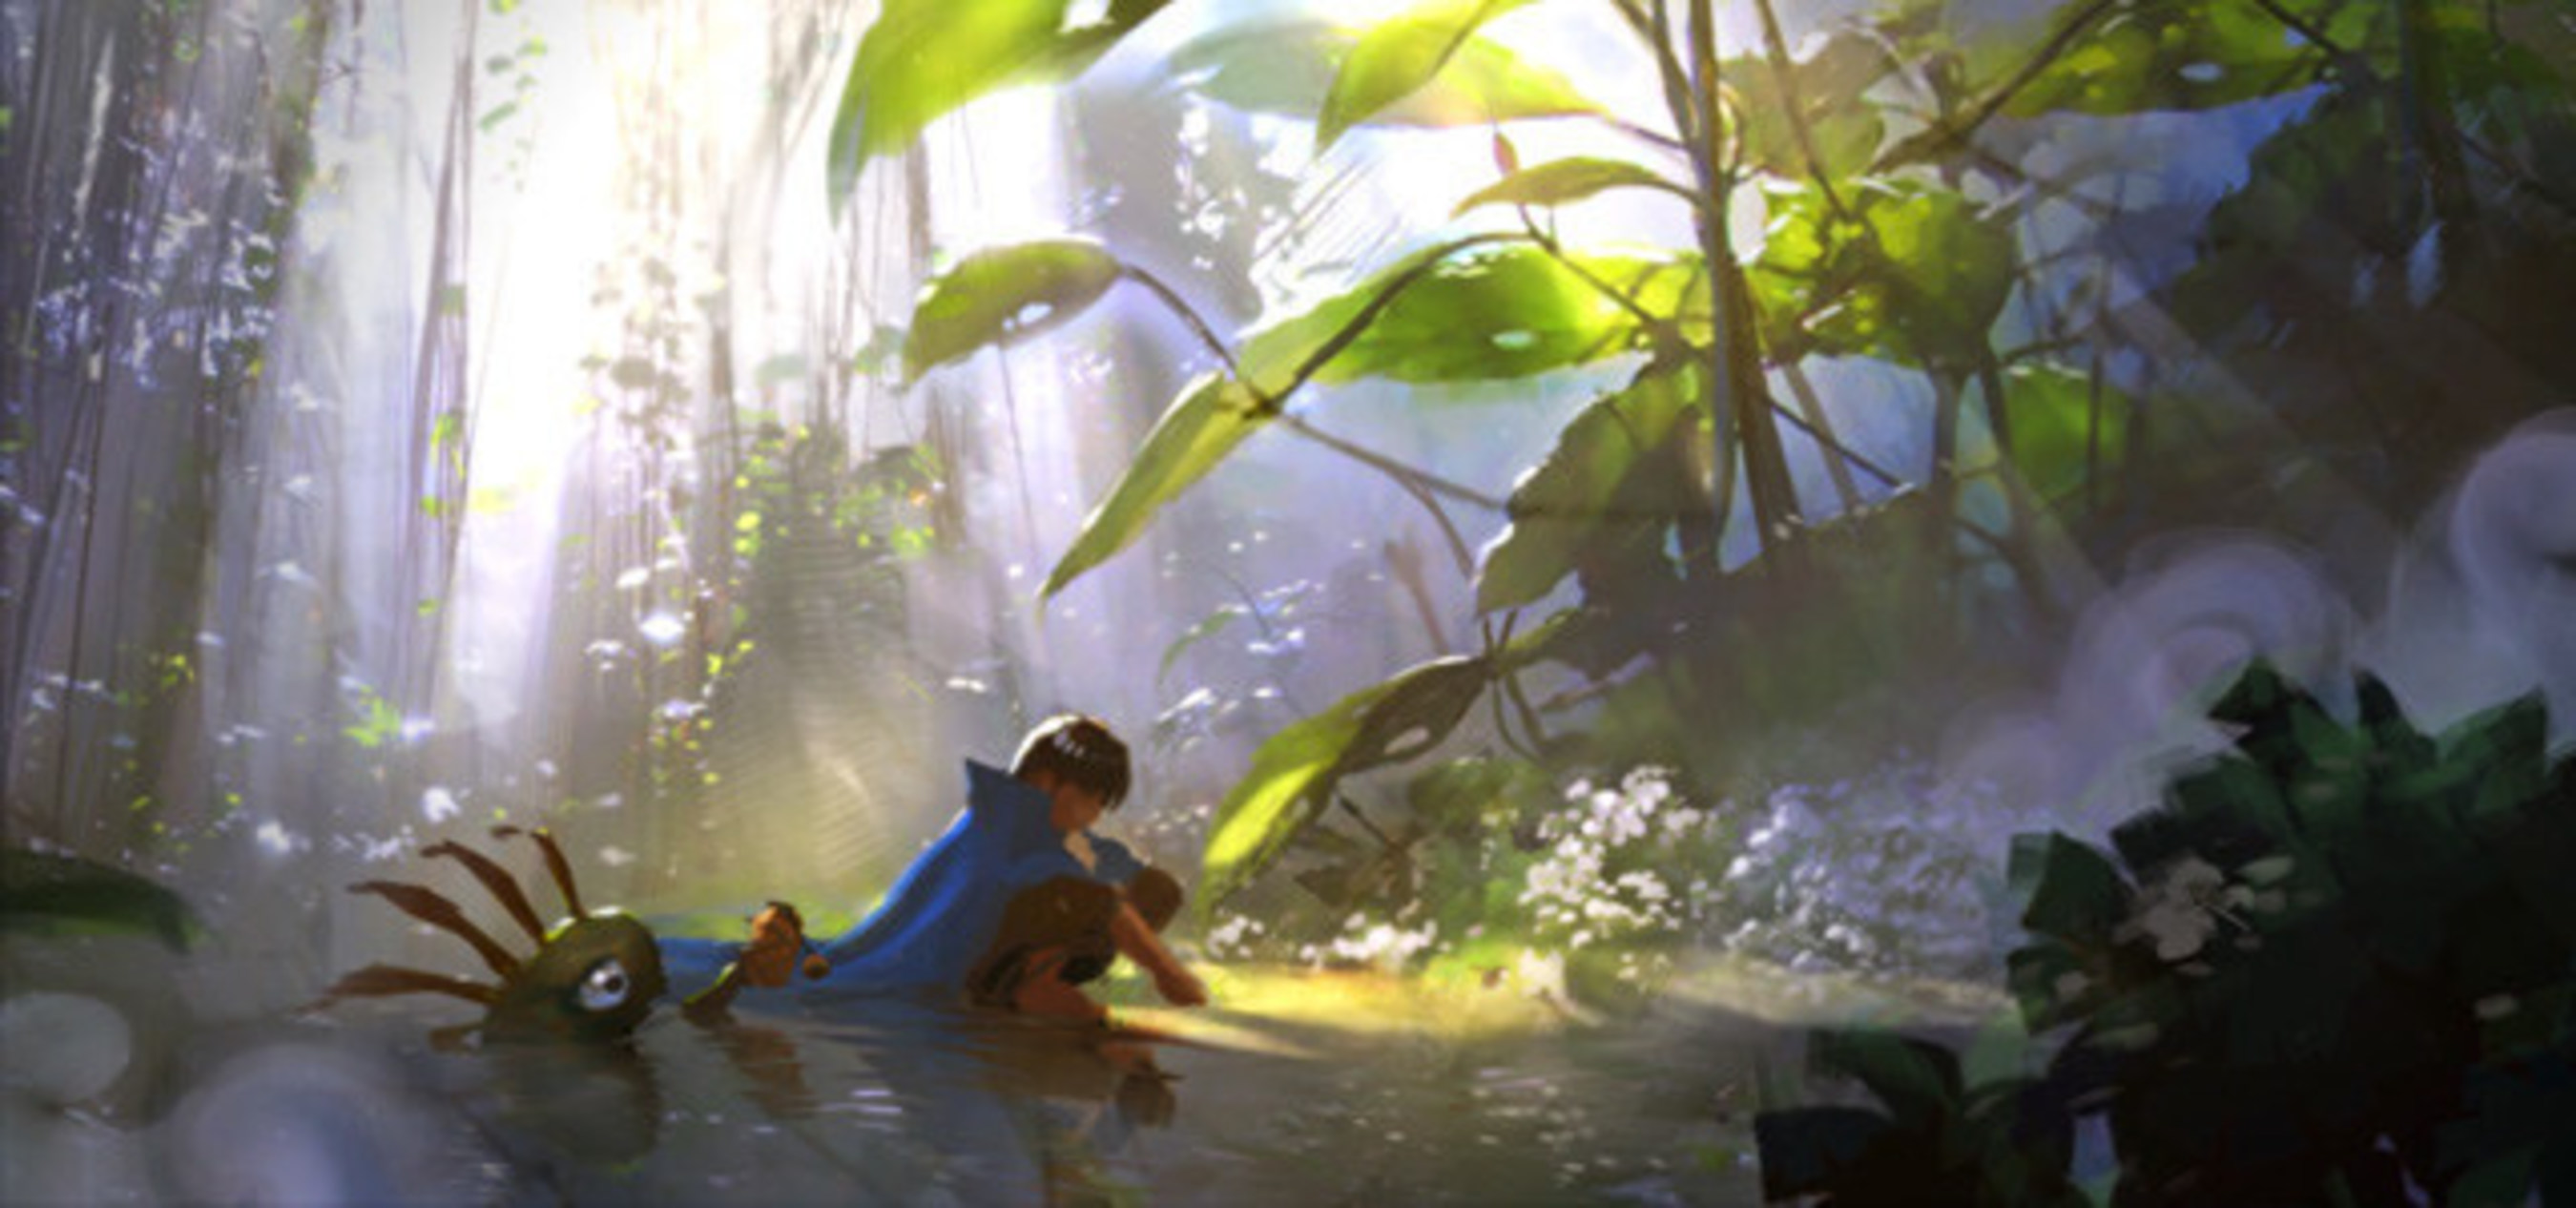 Scholastic & Blizzard Entertainment Announce World of Warcraft(R): Traveler, a New Children's Book Series Based on the Bestselling Video Game Franchise. Image Credit: Blizzard Entertainment